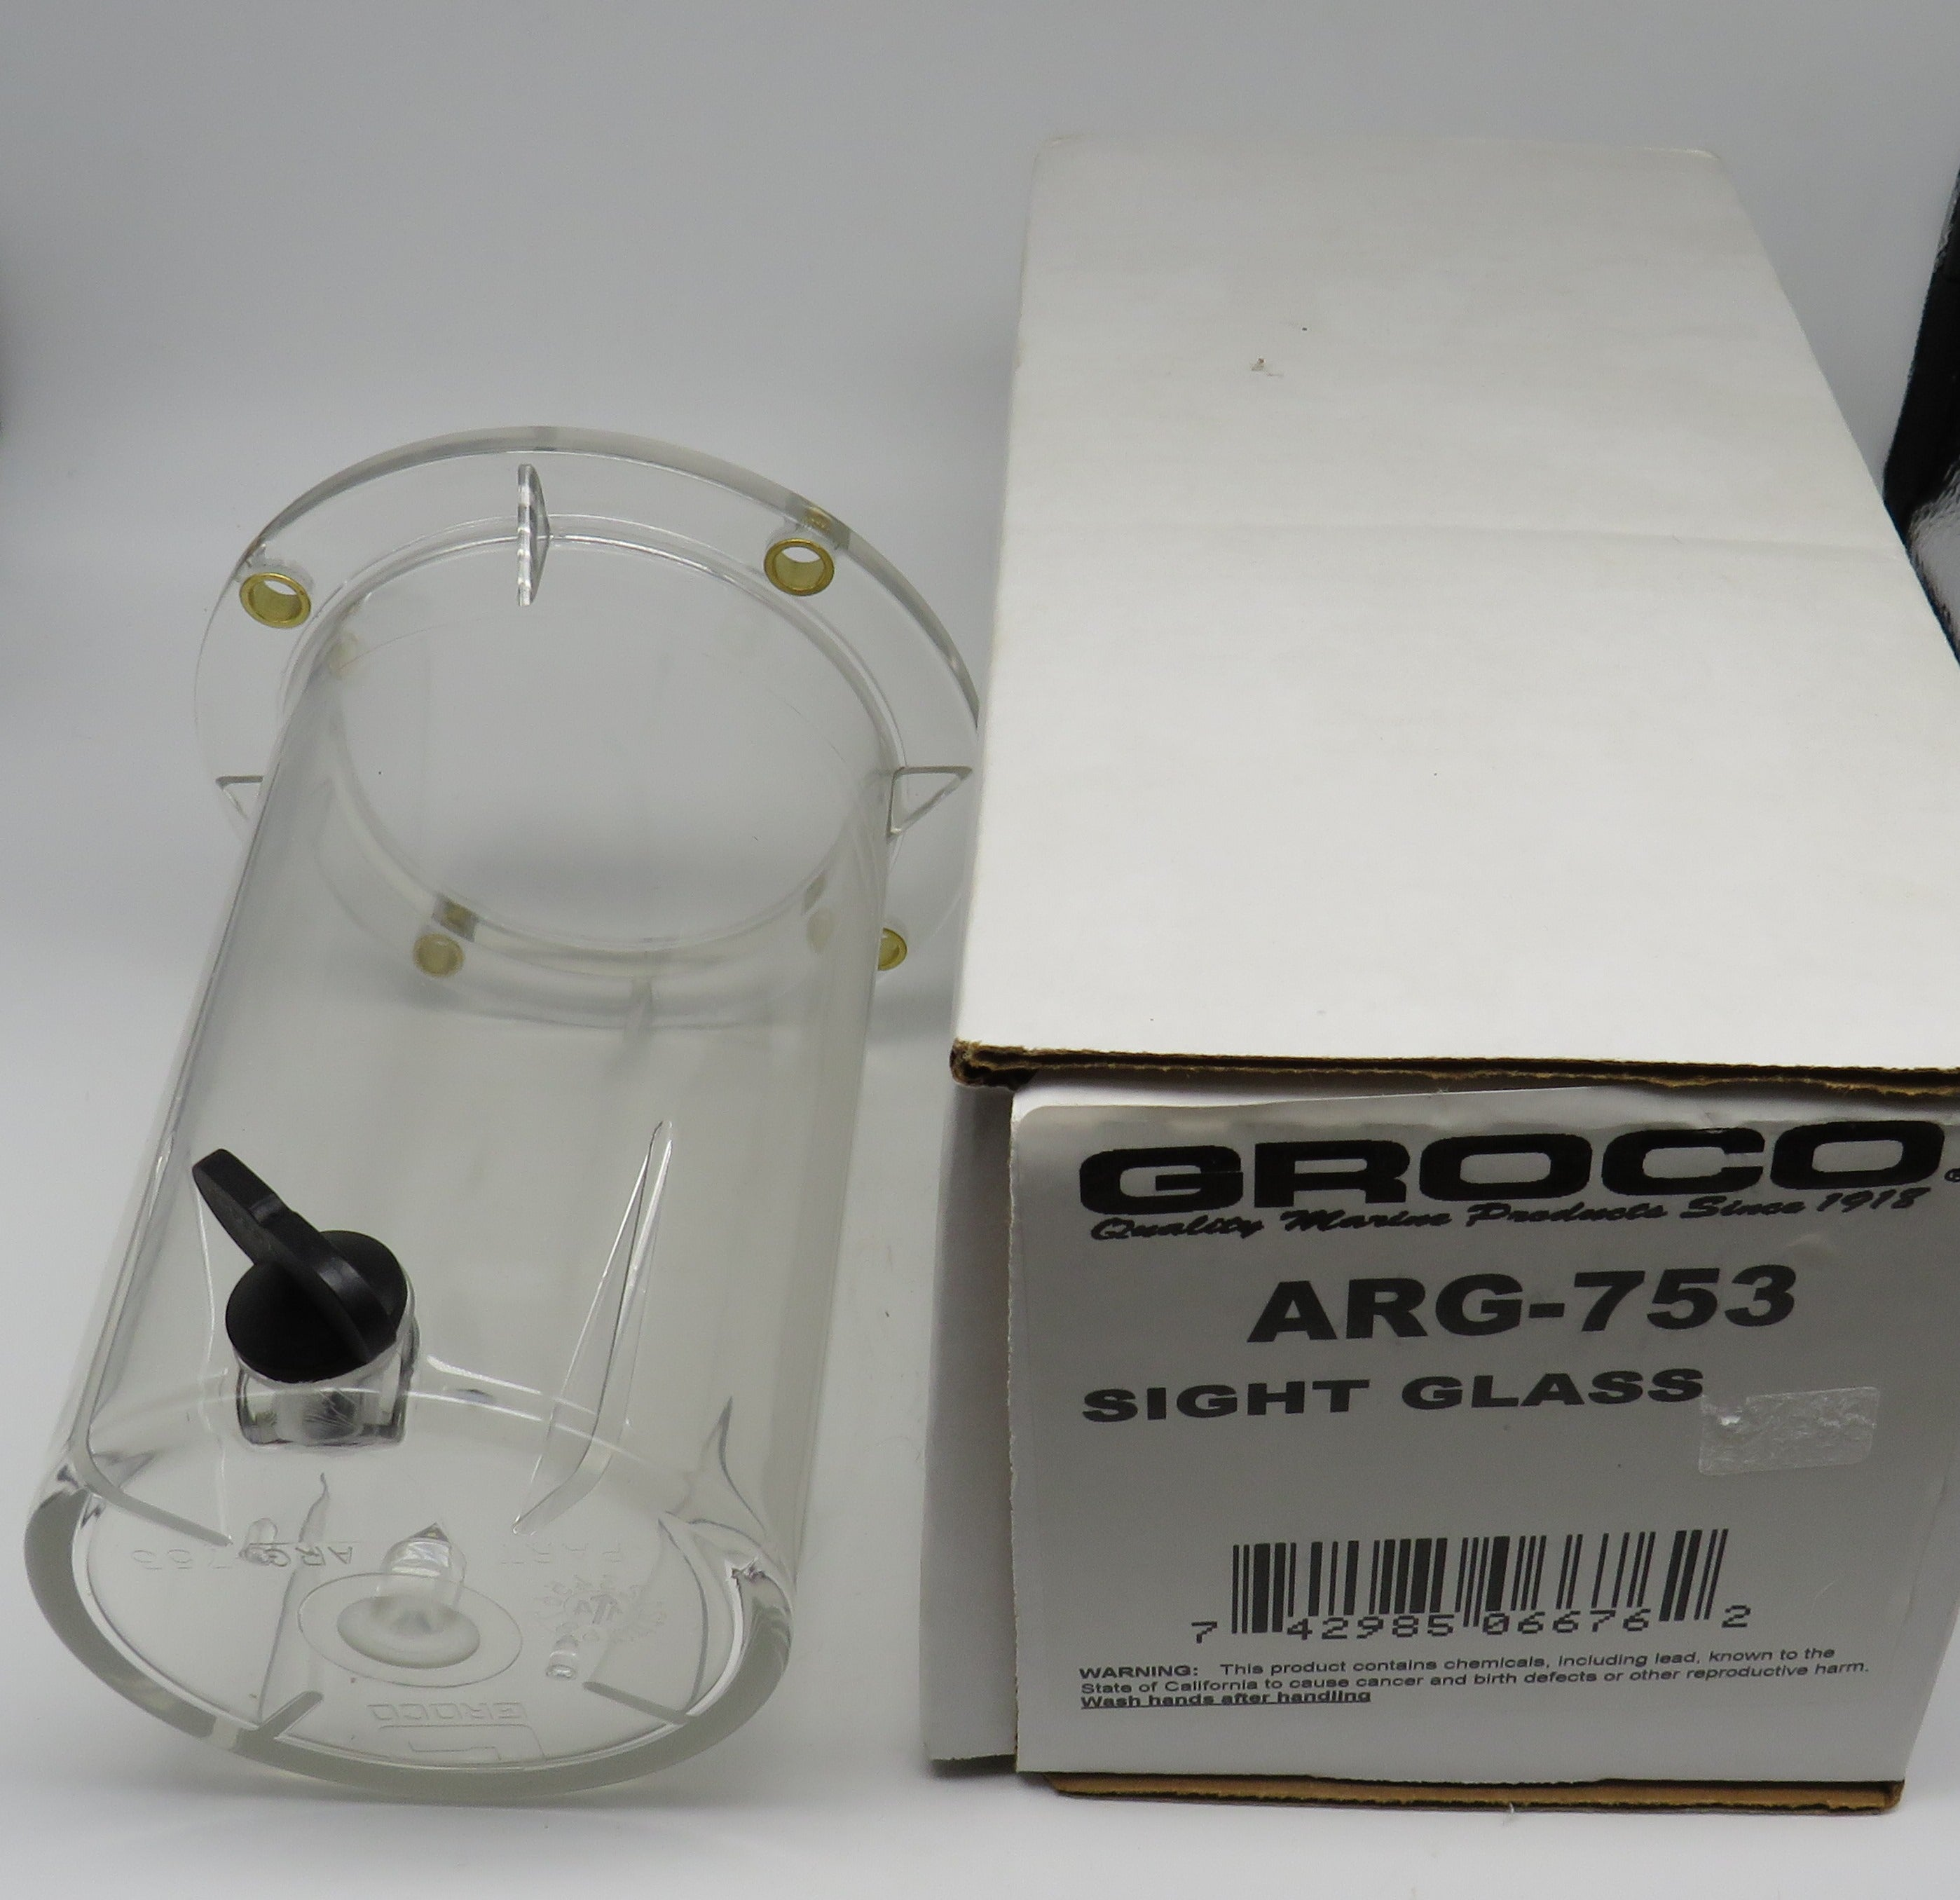 ARG-753 Groco 3-1/2 x 6 Sight Glass Cylinder